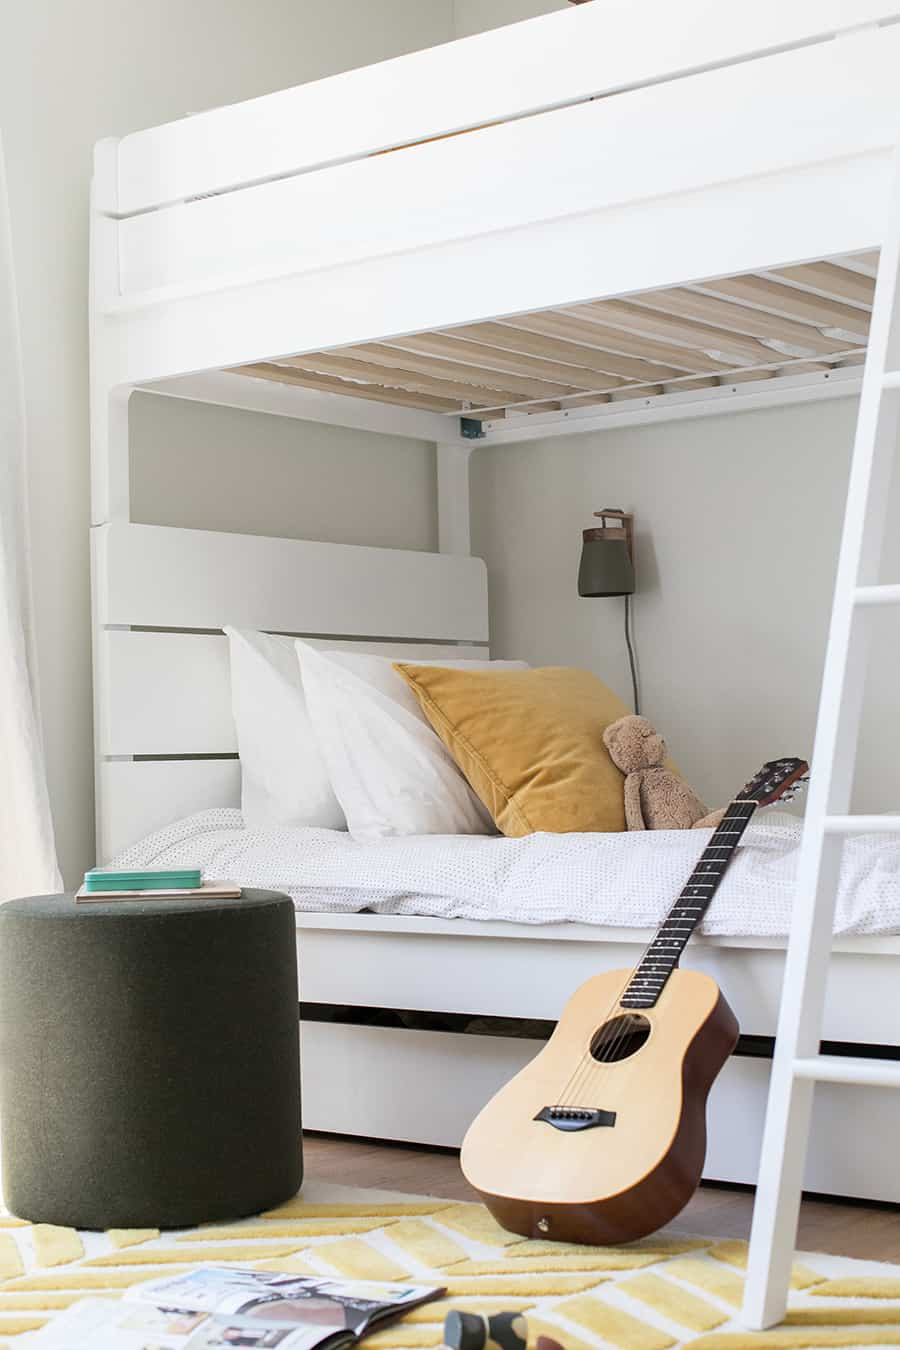 White bunkbeds in a boys room with yellow pillow, white bedding and a guitar.